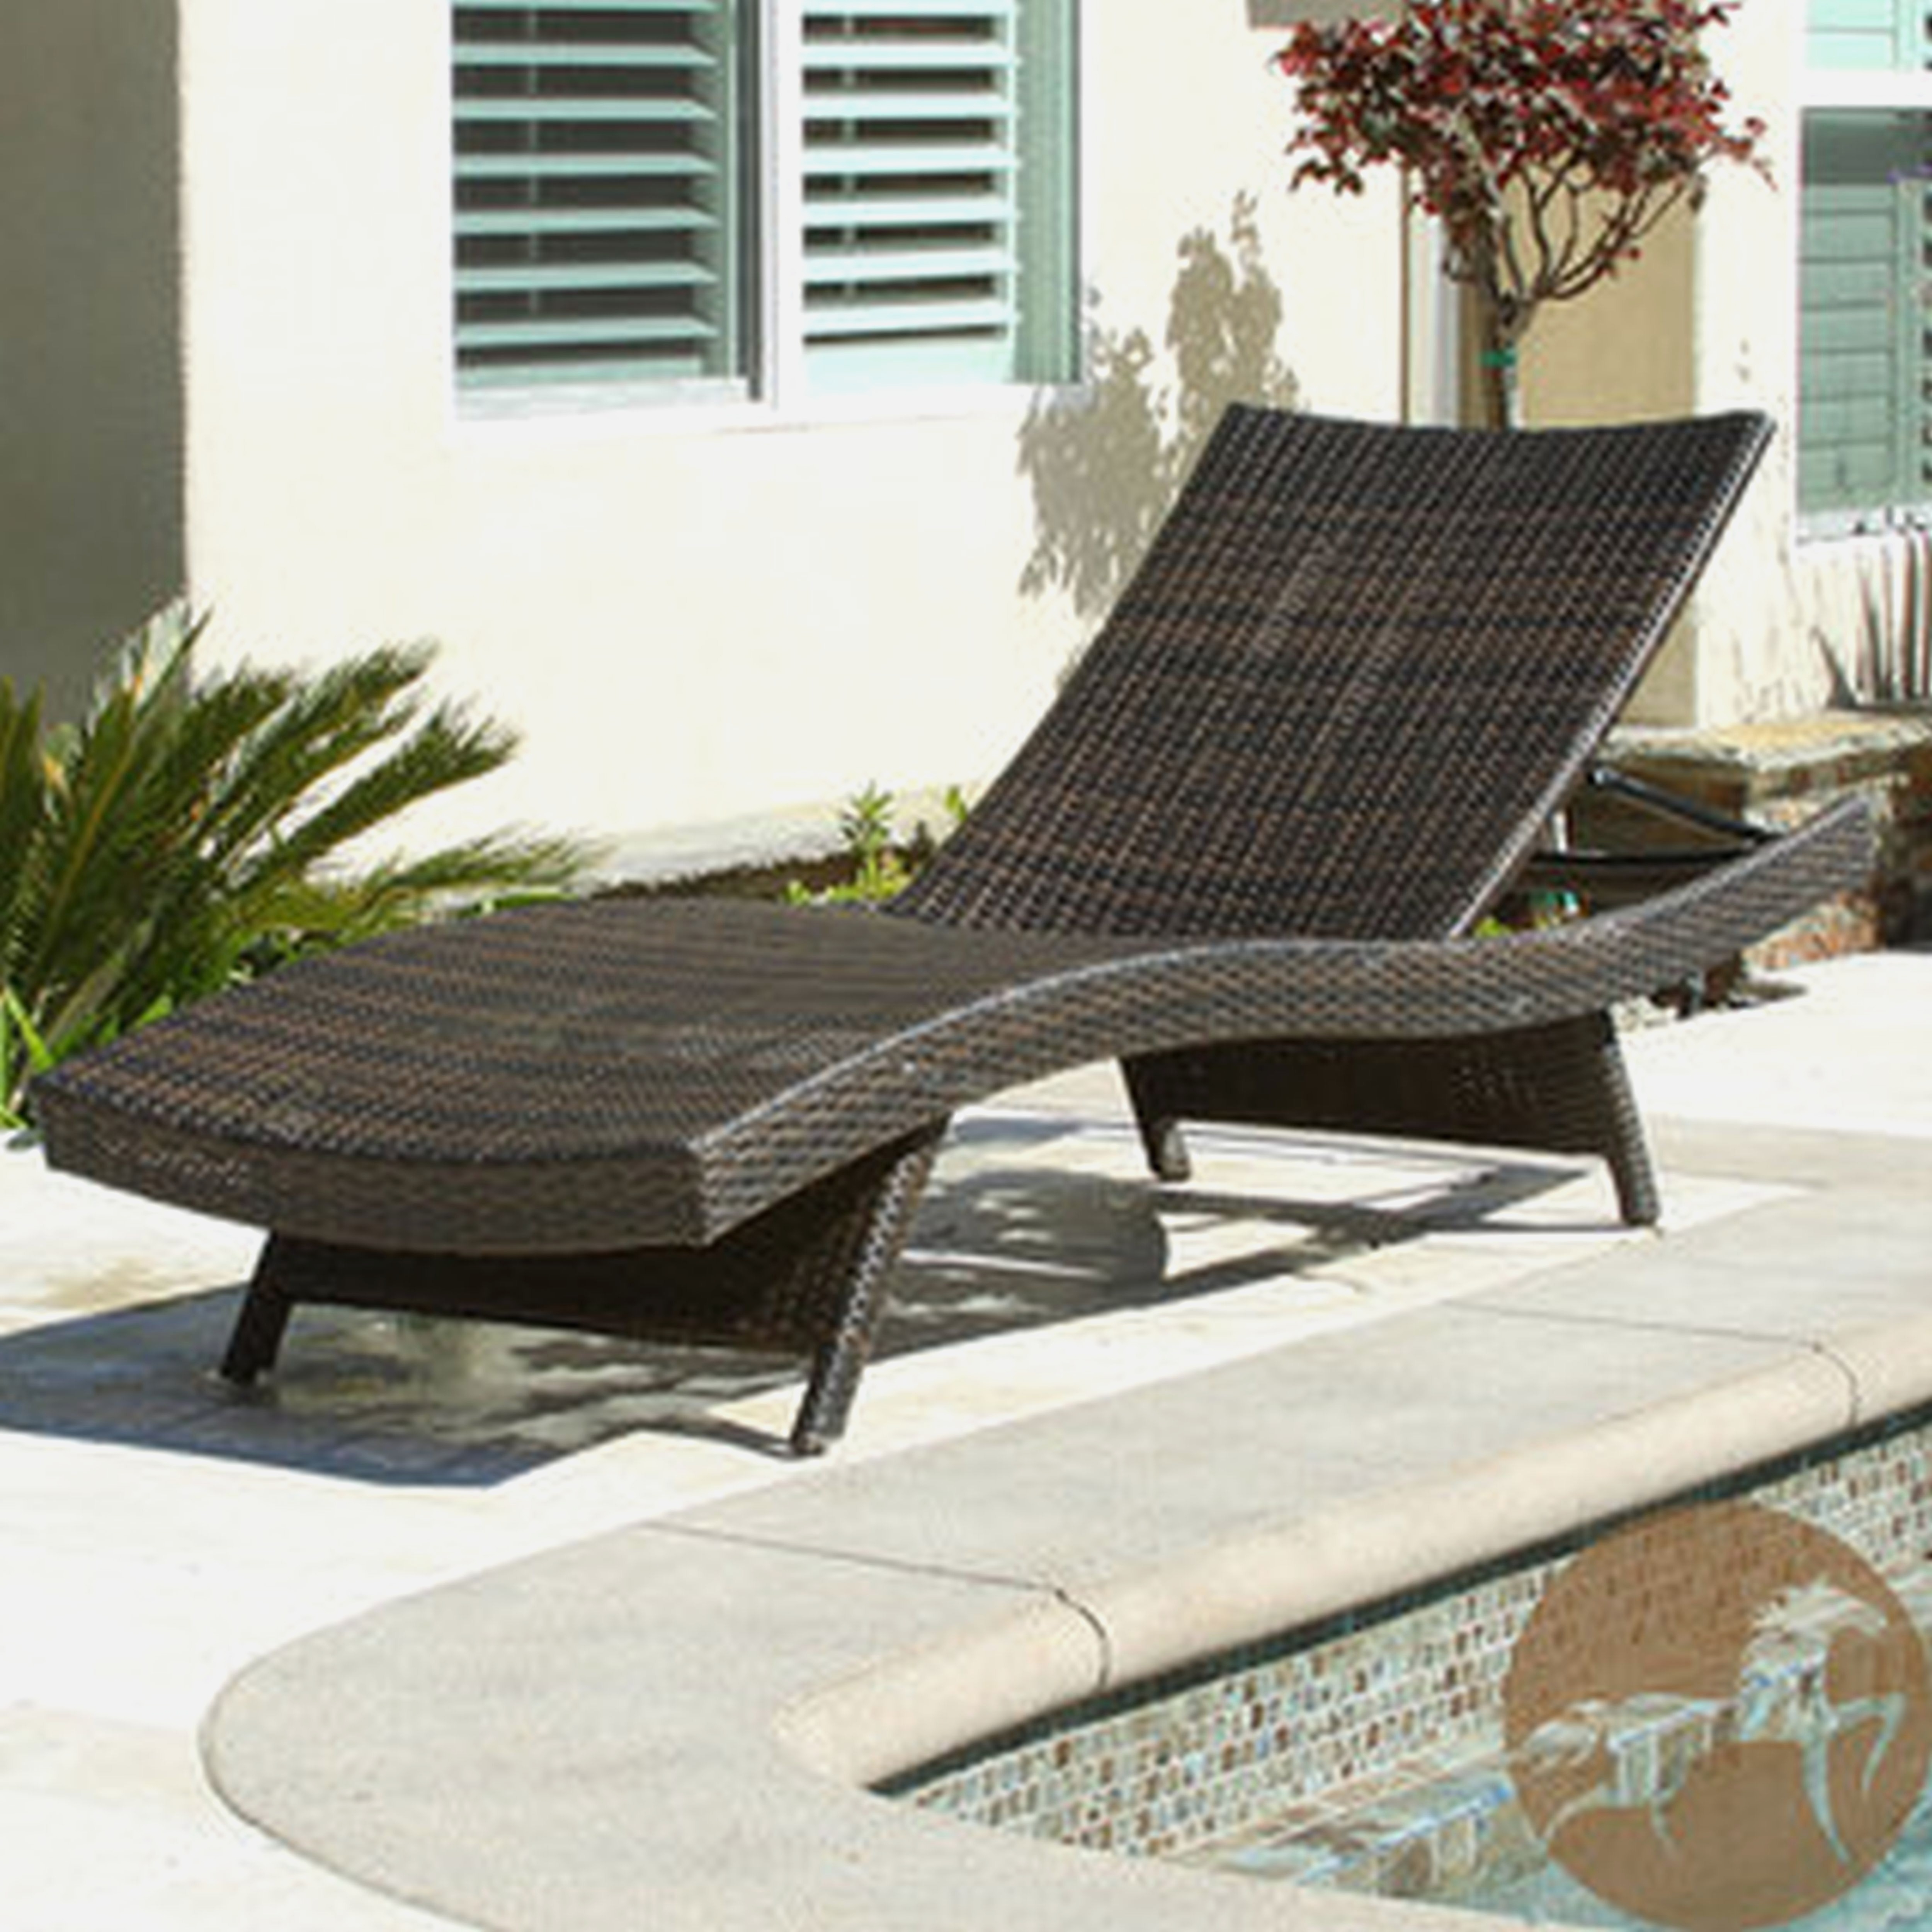 Big Lots Chaise Lounges In Preferred Patios: Amazing Outdoor Decoration With Allen & Roth Patio (View 14 of 15)